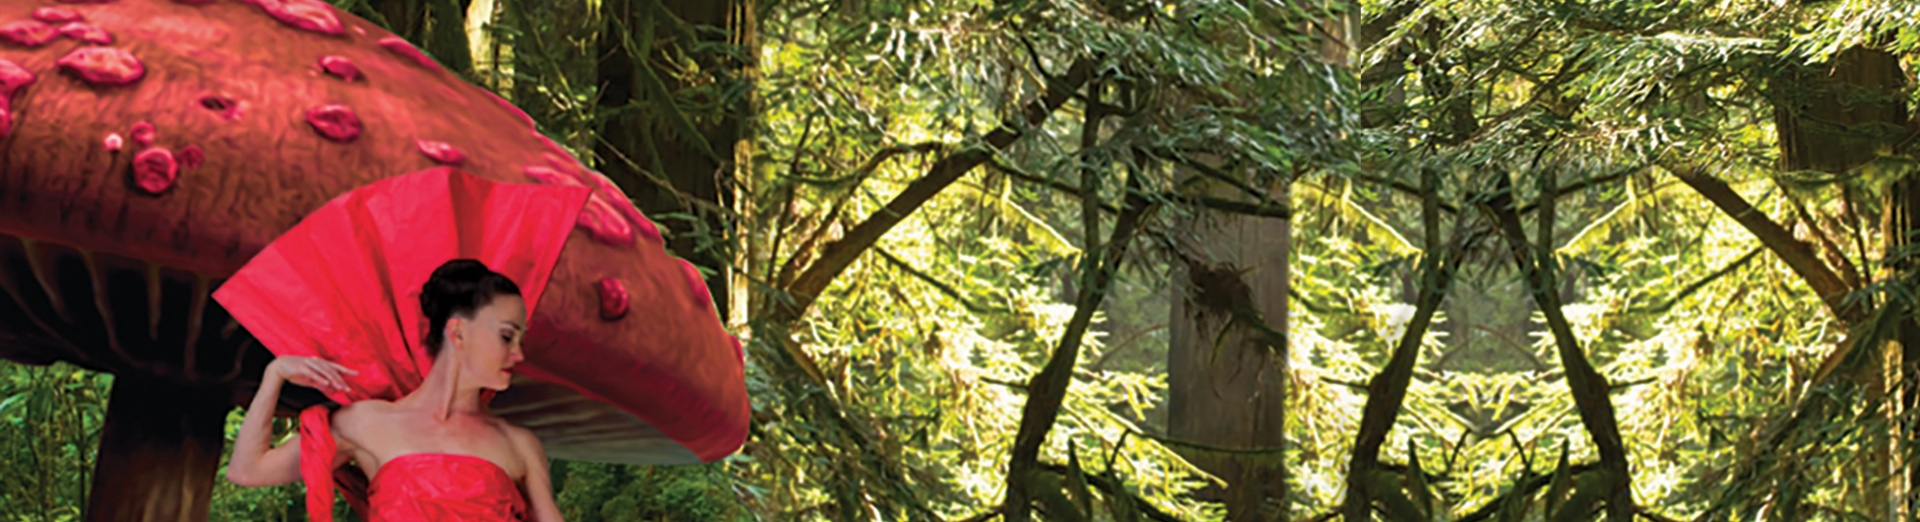 A member of MOMIX in a red dress standing in a forest.